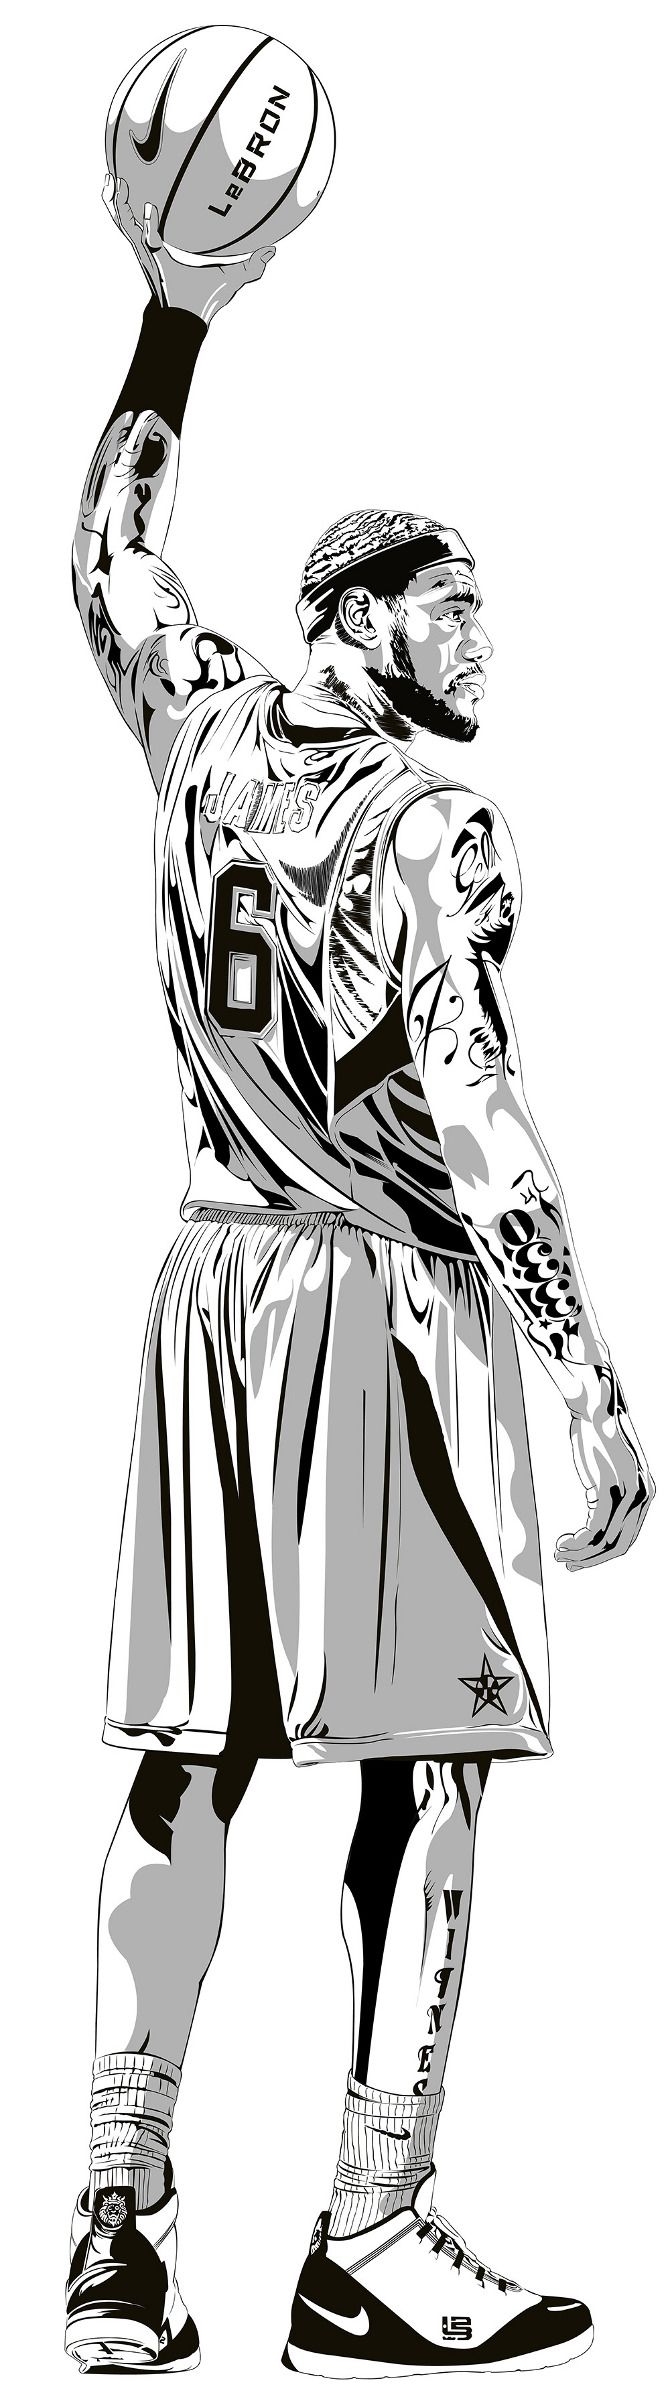 Le Bron James by JD.   www.joshdominguez.com                                                                                                                                                                                 Más